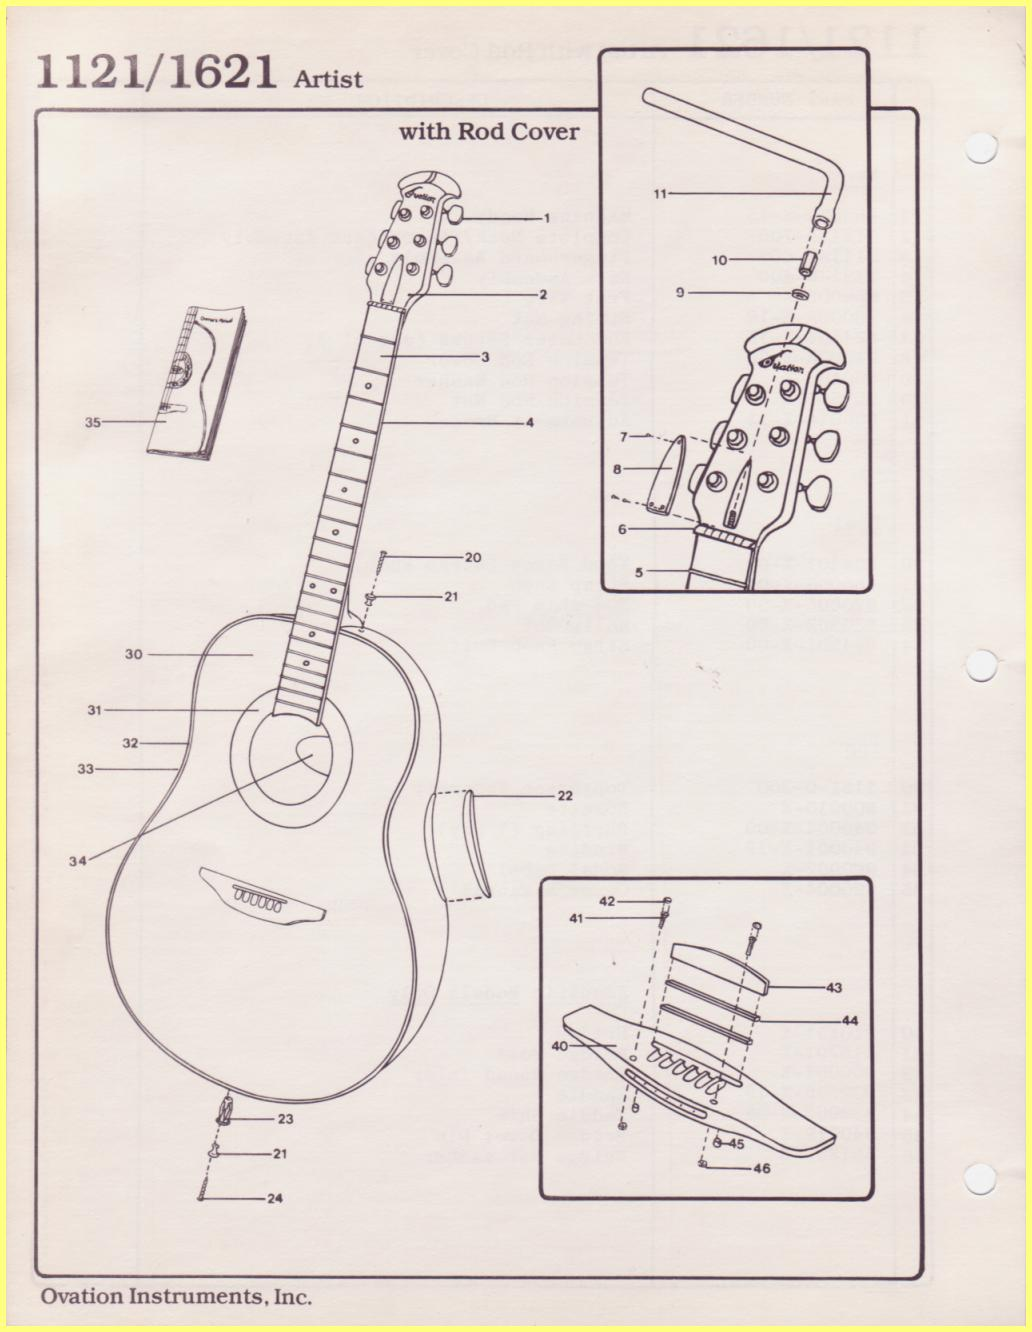 Ovation Parts Catalog Electric Guitar Wiring Schematics 1121 1621 Artist With Rod Cover